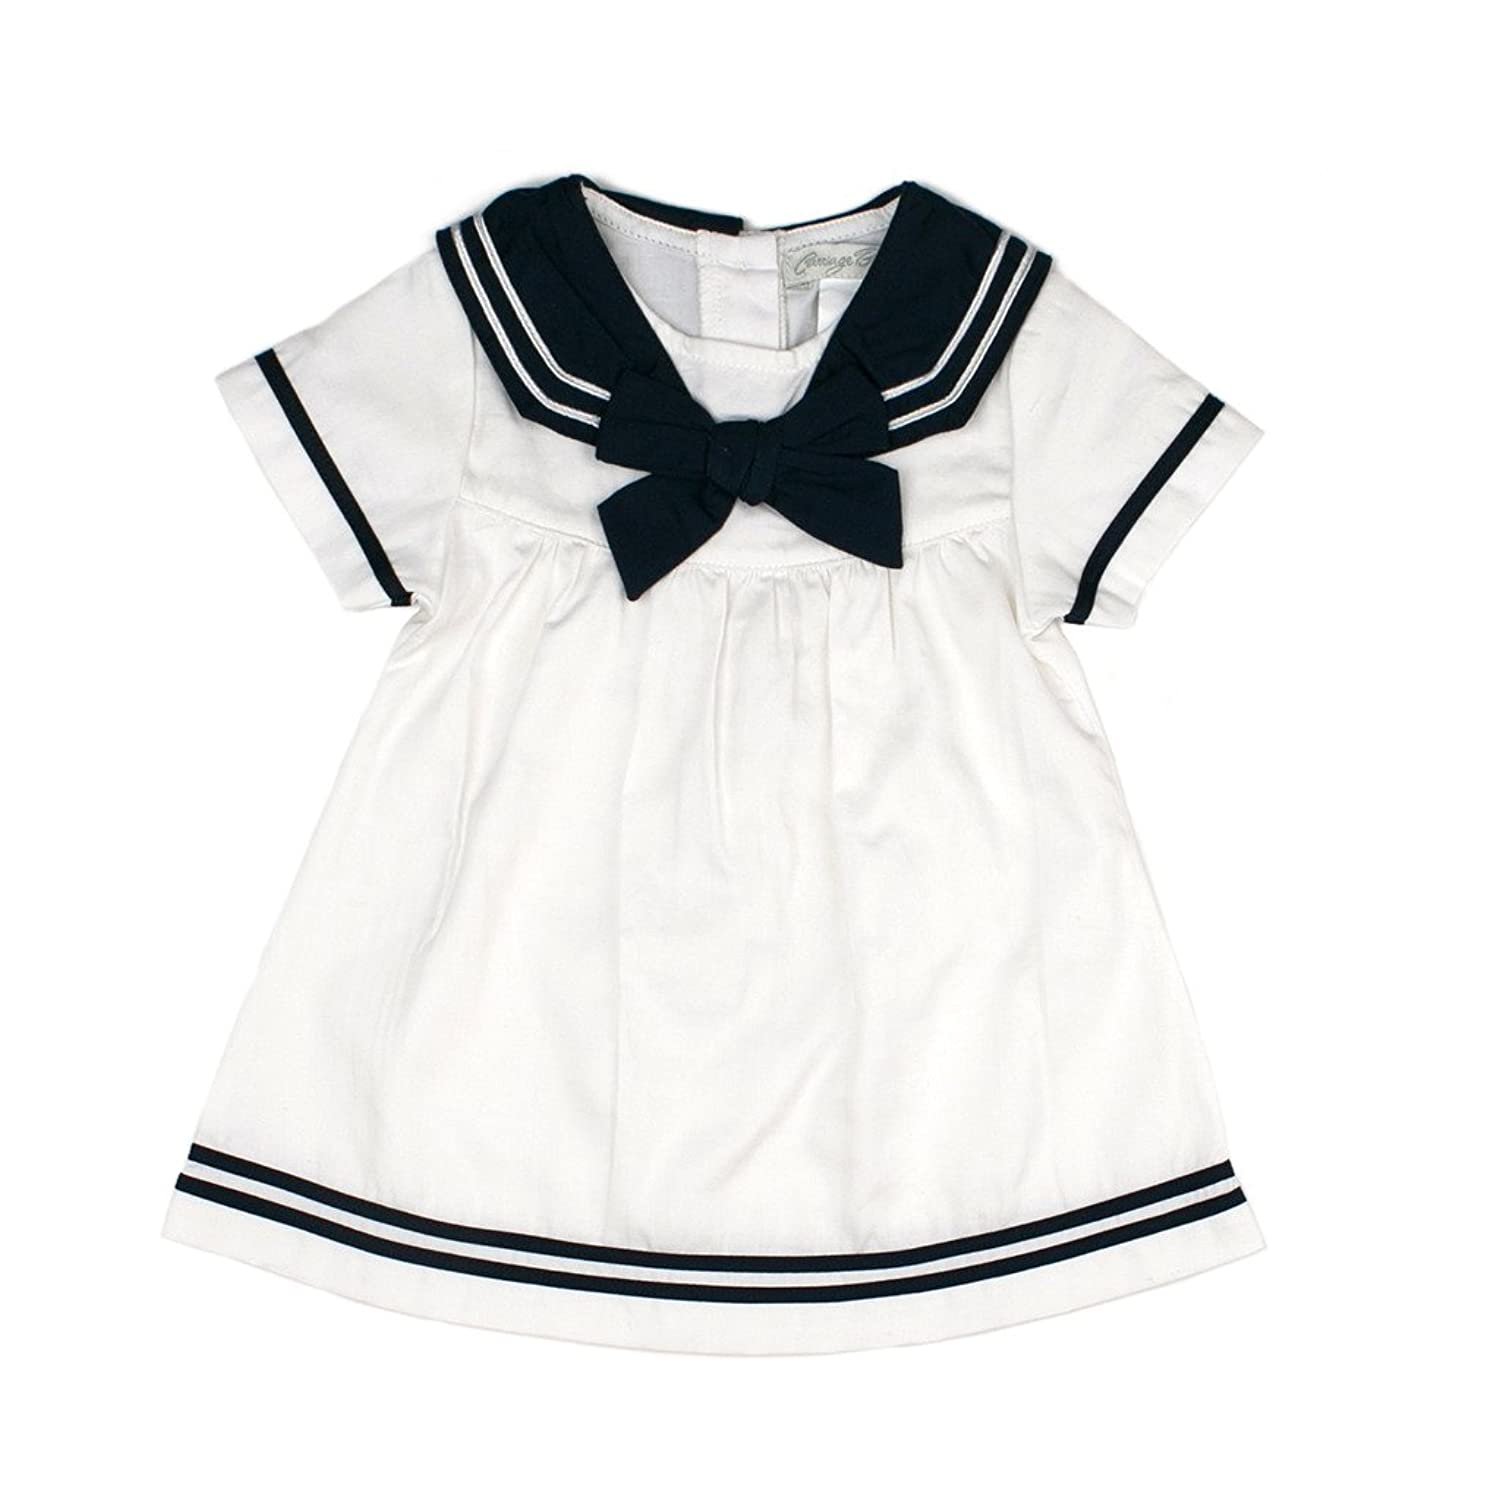 1930s Childrens Fashion: Girls, Boys, Toddler, Baby Costumes Toddler  Girl Spring Sailor Dress - Nautical Navy White Carriage Boutique Baby $49.00 AT vintagedancer.com